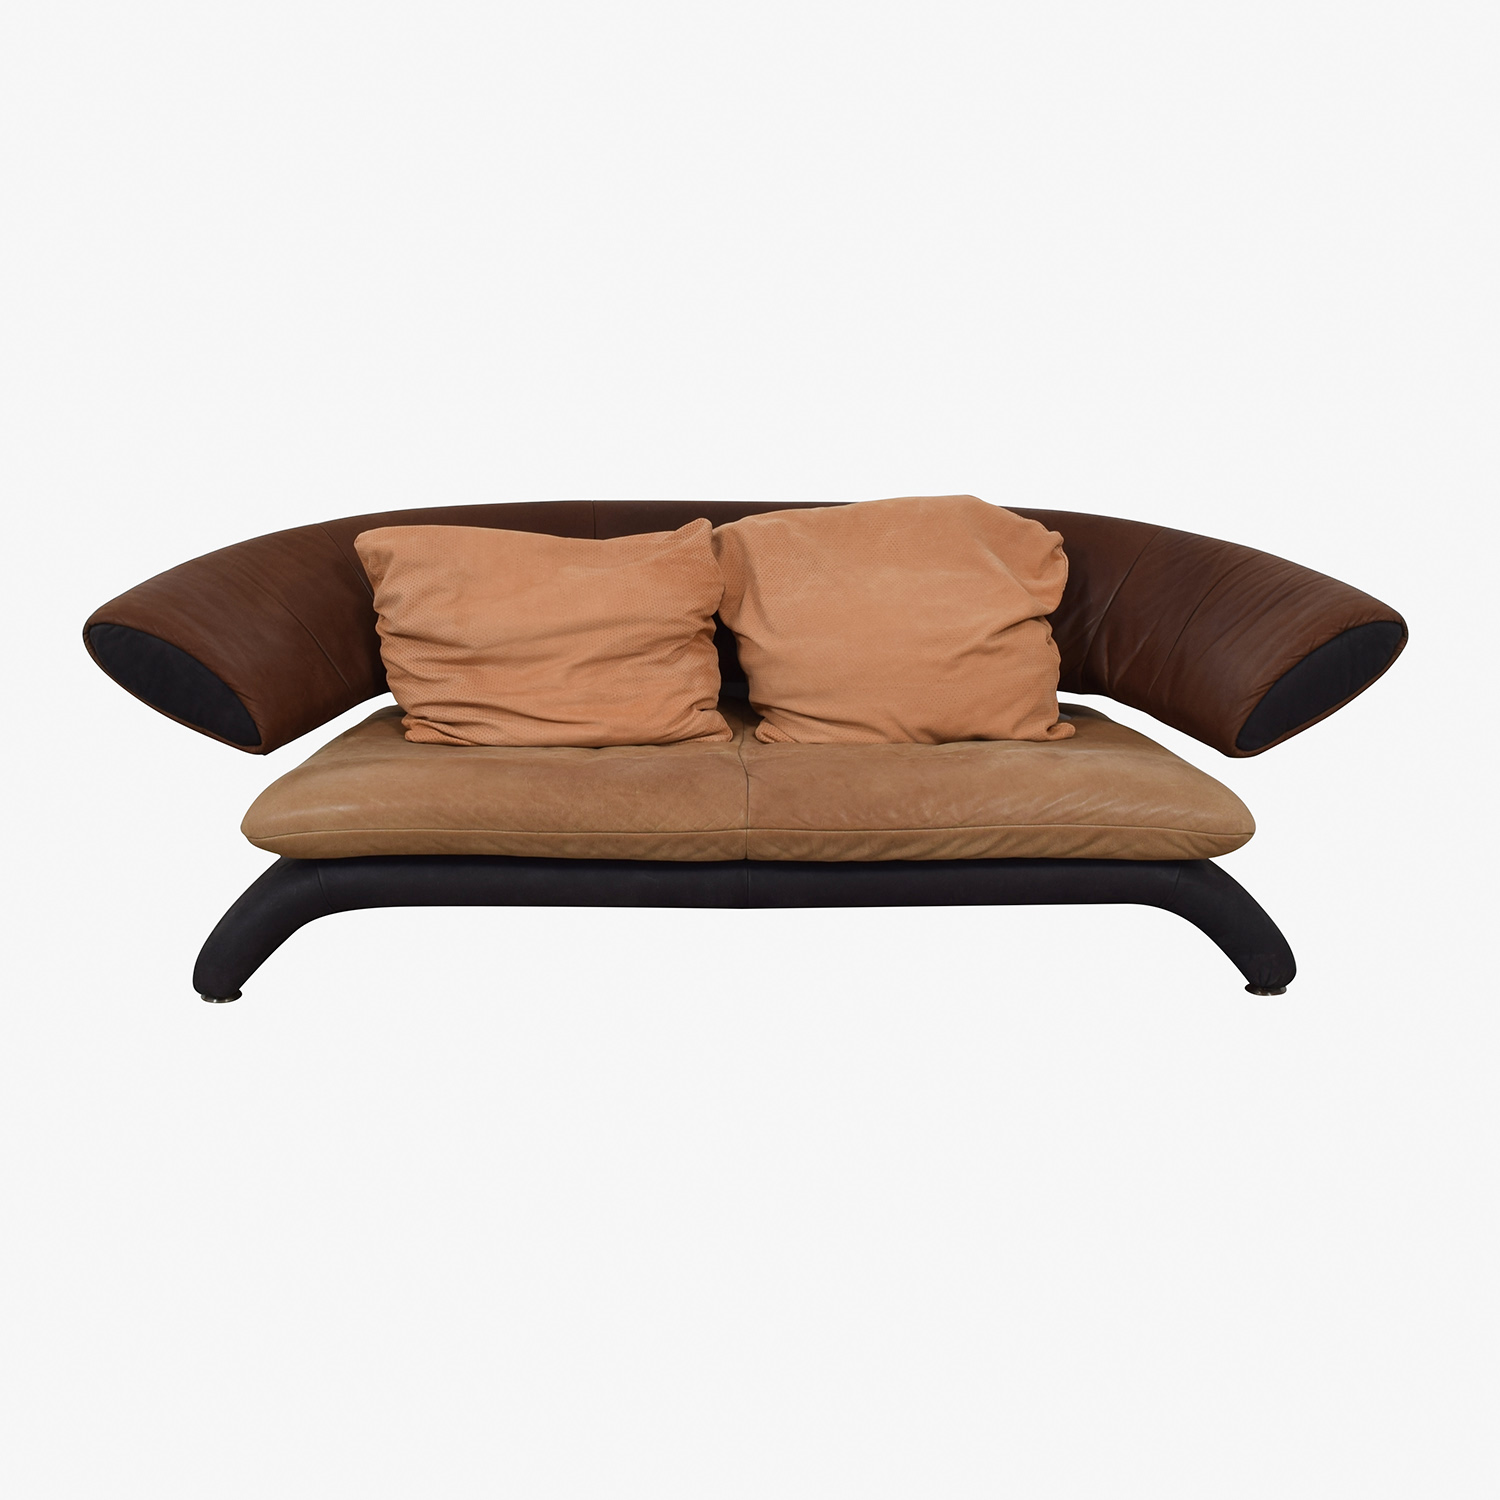 Koinor Shades of Brown Modern Couch sale